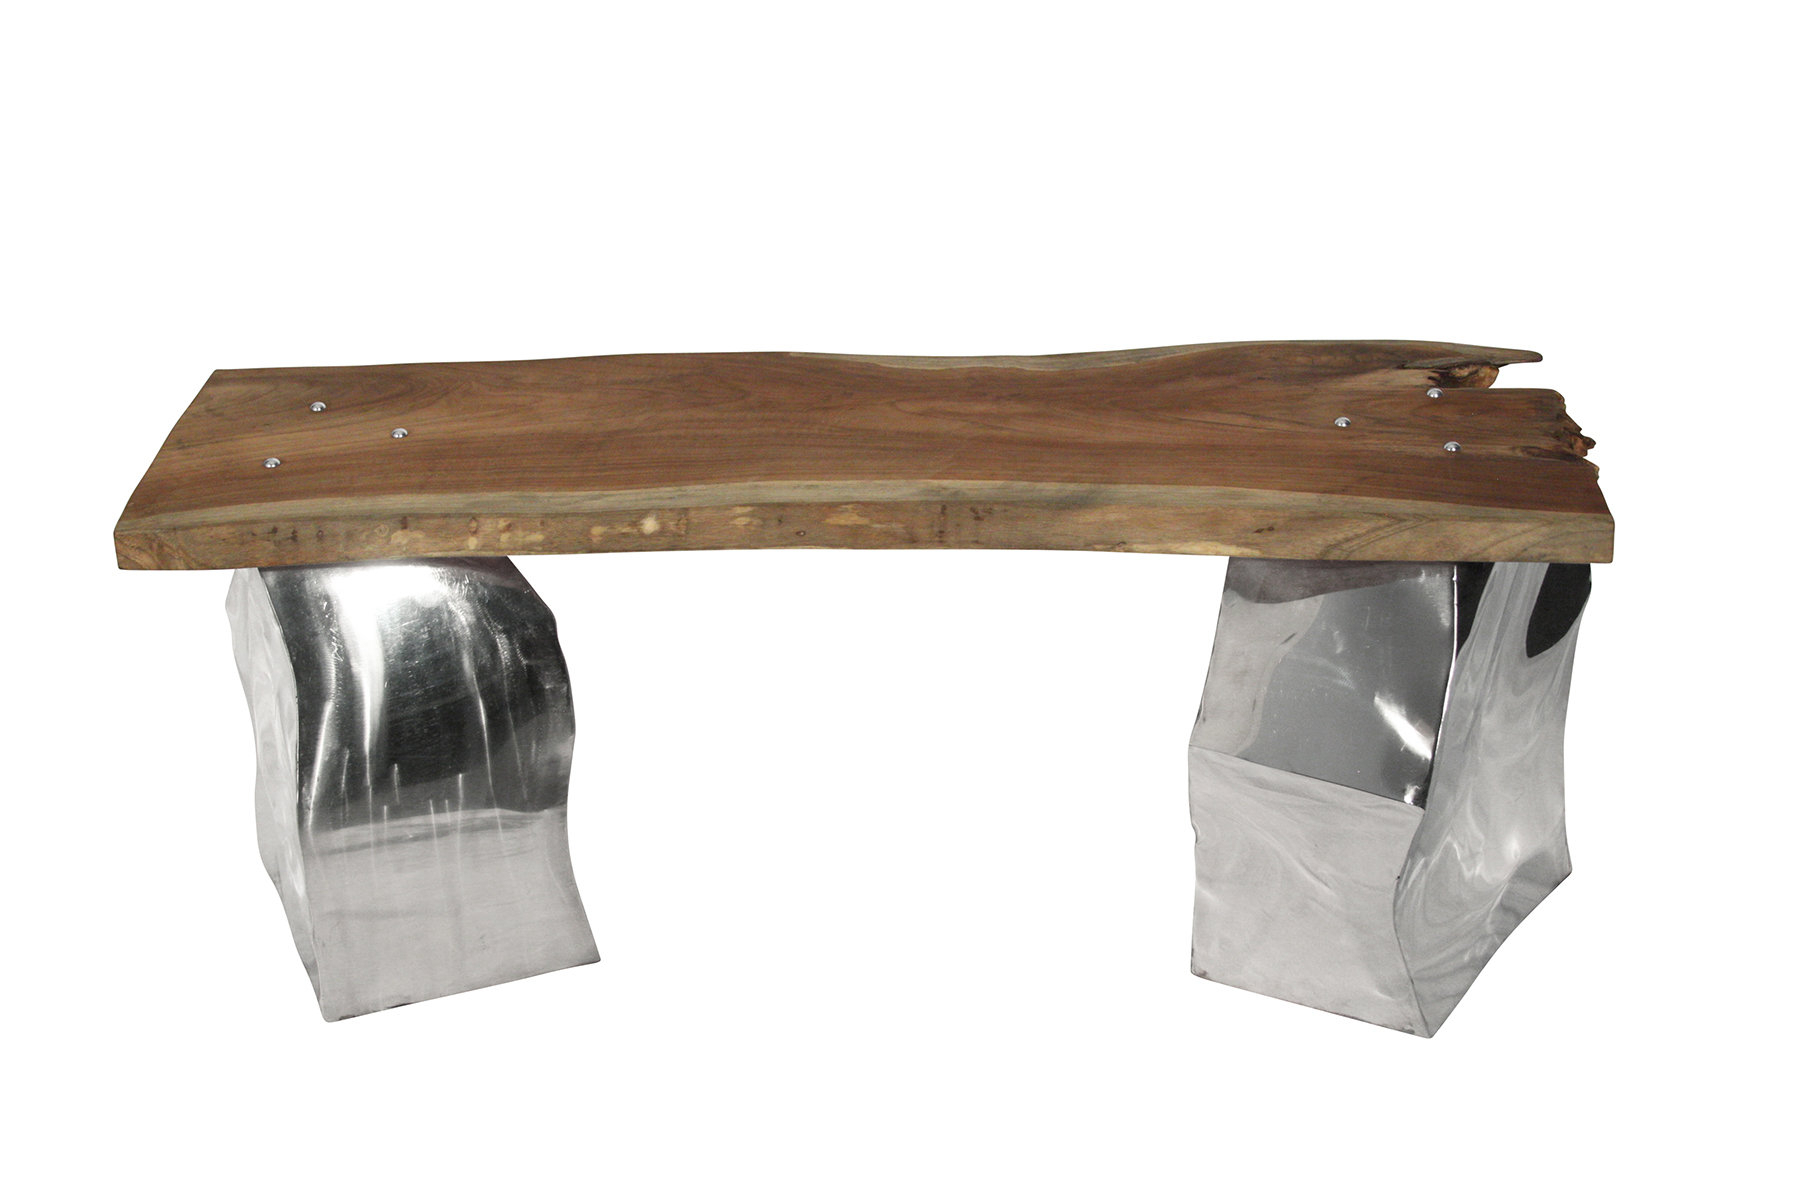 Ibolili Agate Metal Entryway Bench With Teak Seat | Wayfair in Mix Agate Metal Frame Console Tables (Image 16 of 30)